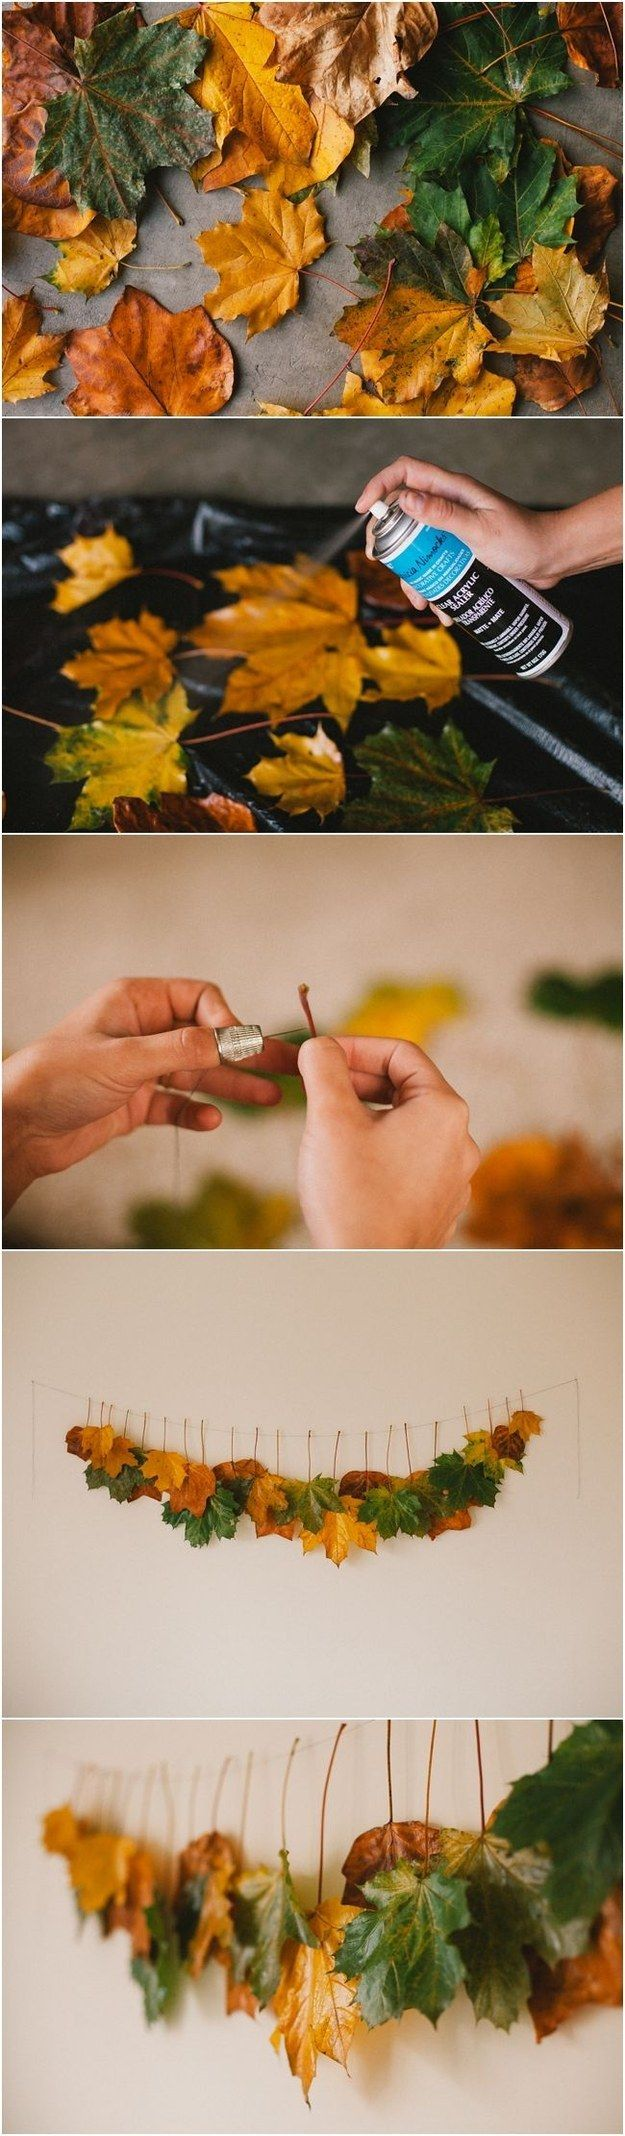 Leaf Garland | Community Post: 16 Awesome DIY Projects You Can Make With Fall Foliage